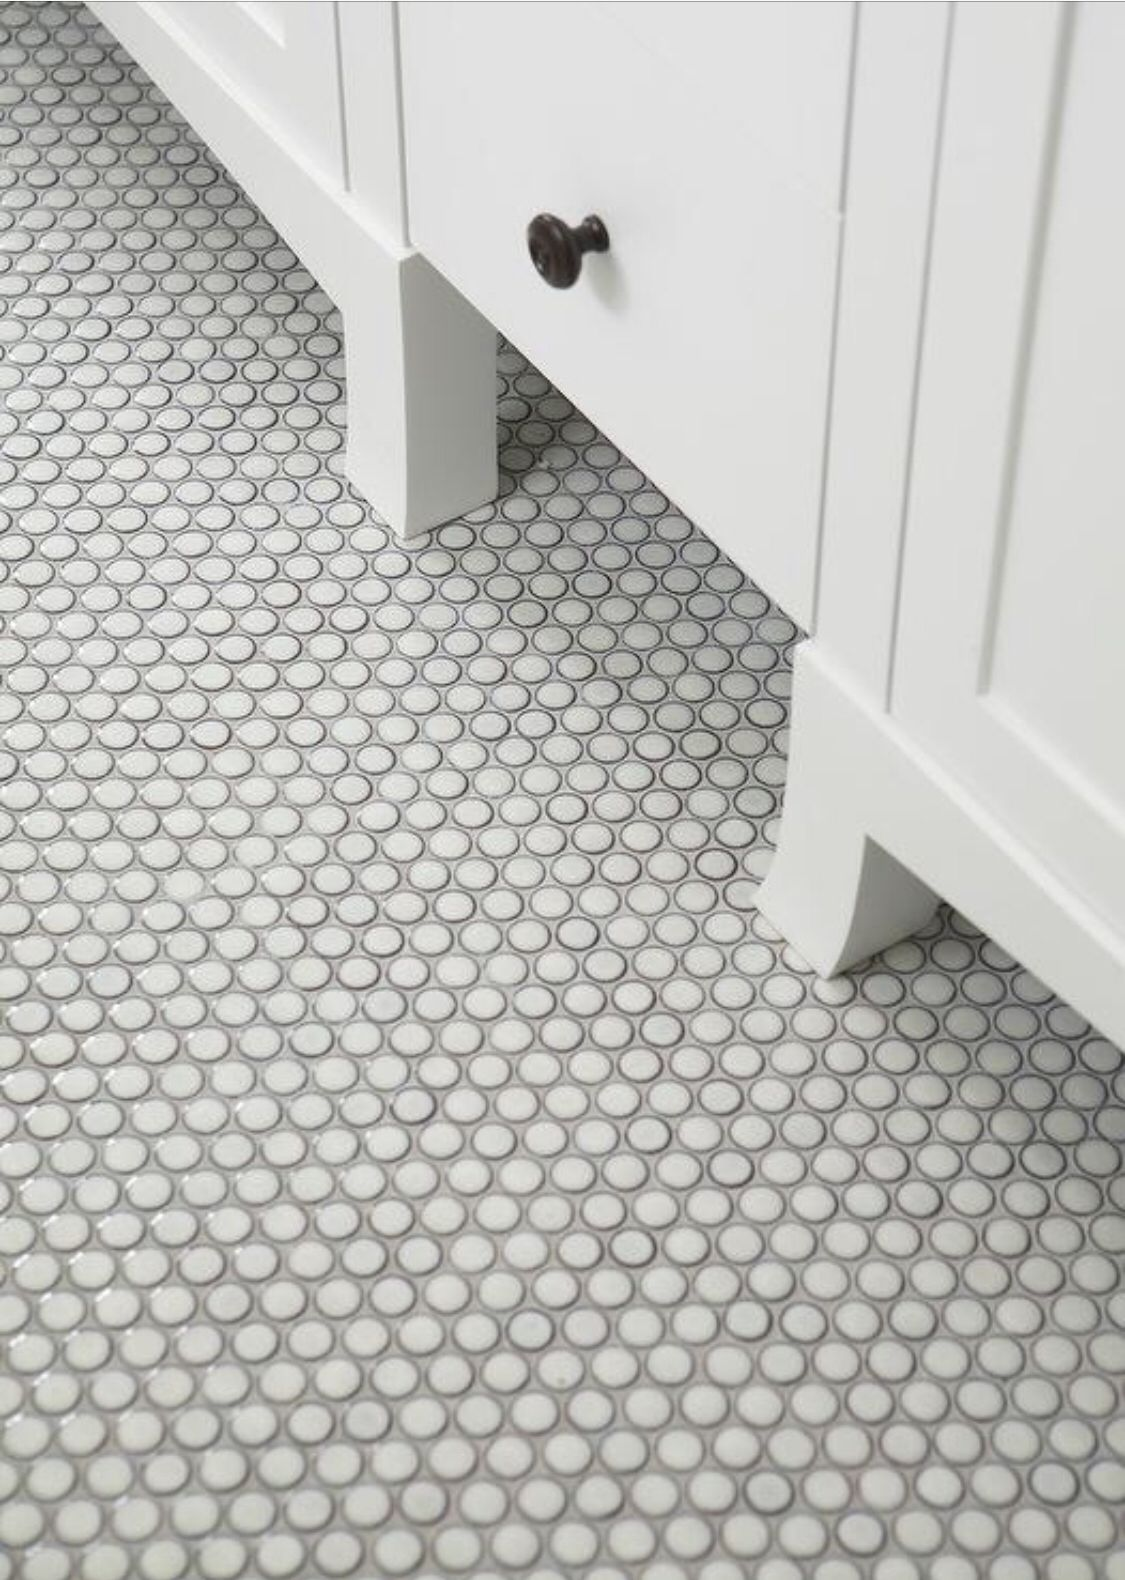 Pin By Pitre Bathrooms On Mosaic Penny Tiles Bathroom